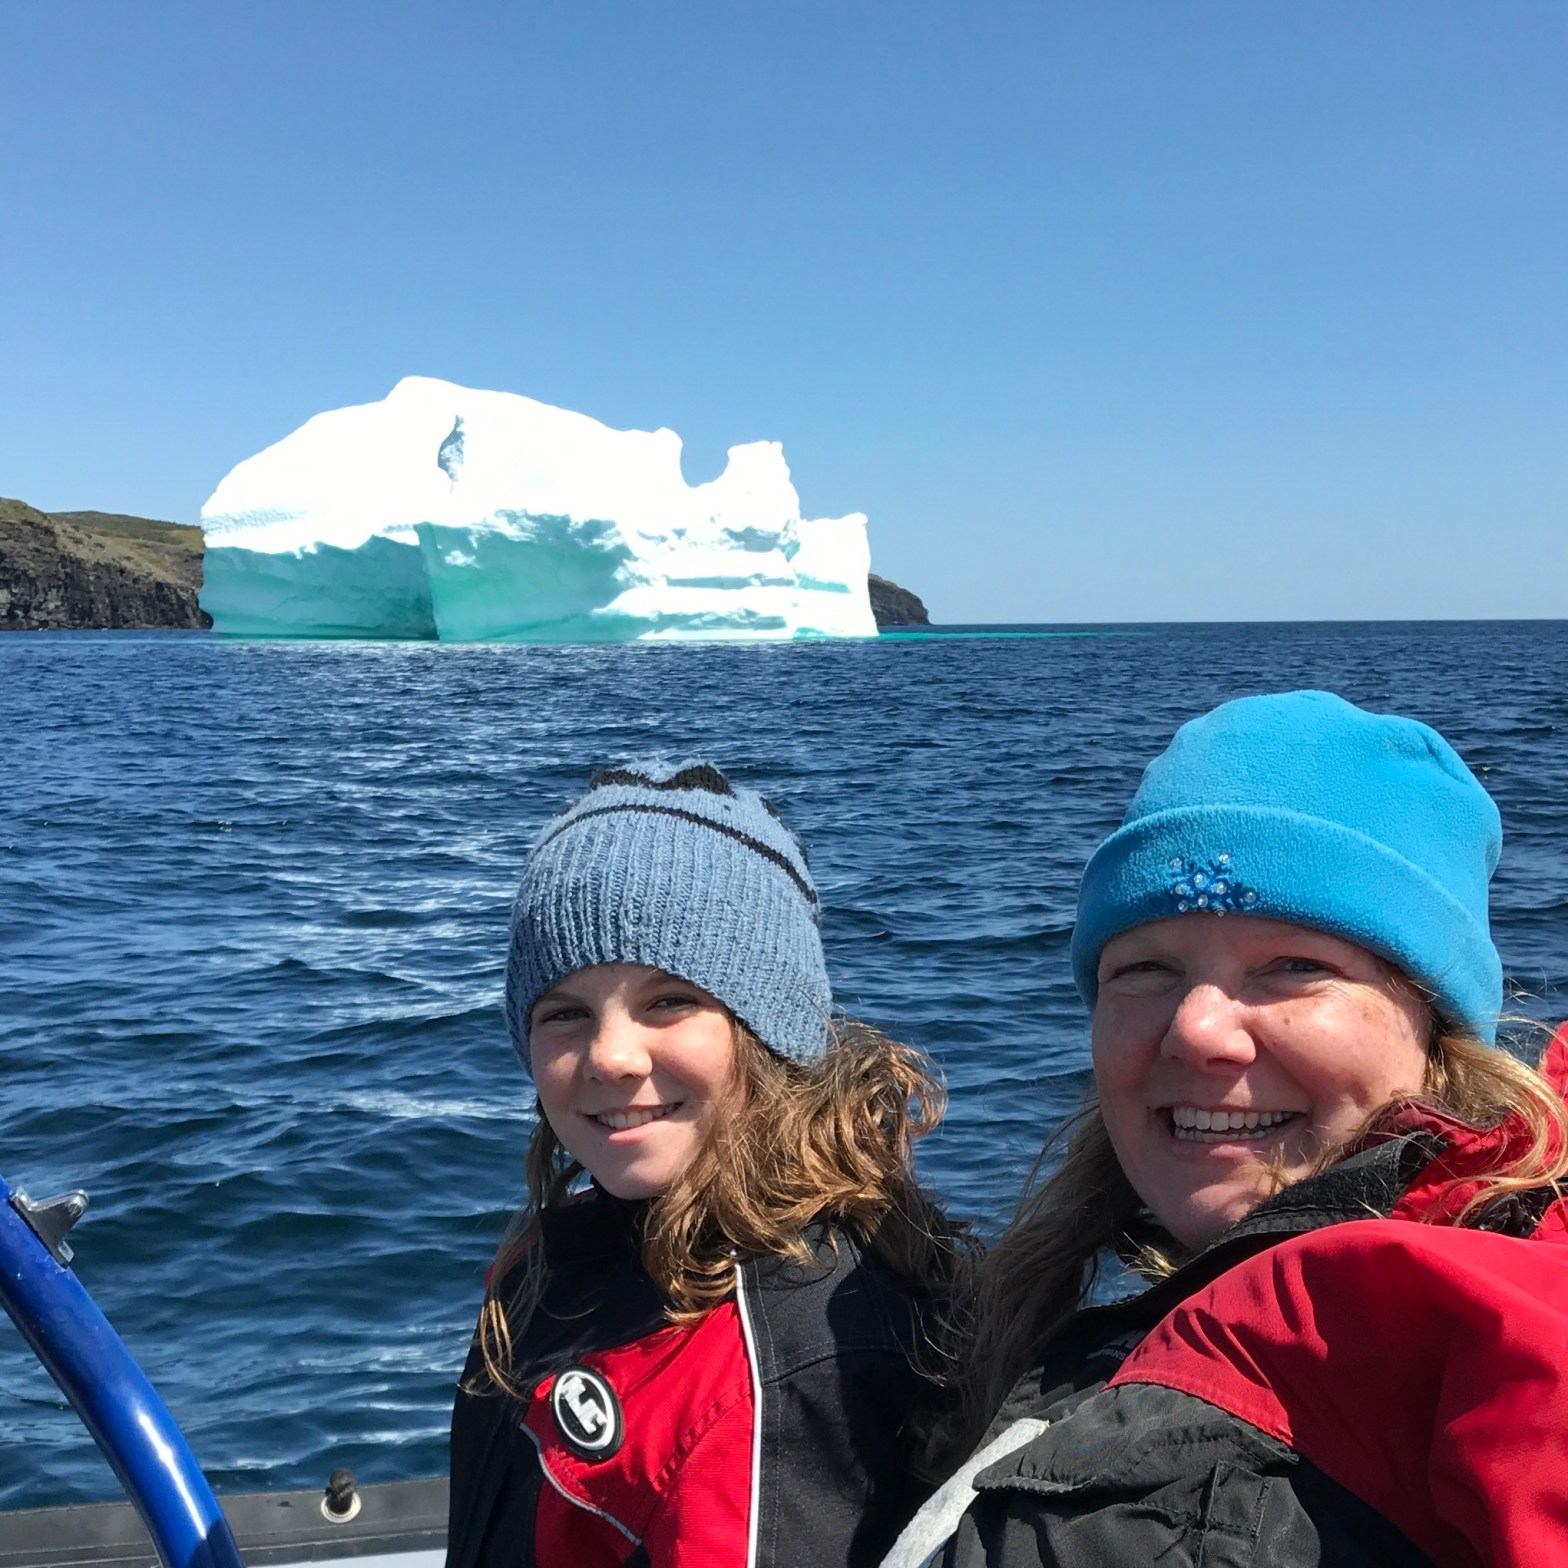 Me and my daughter on the ocean, near an iceberg.